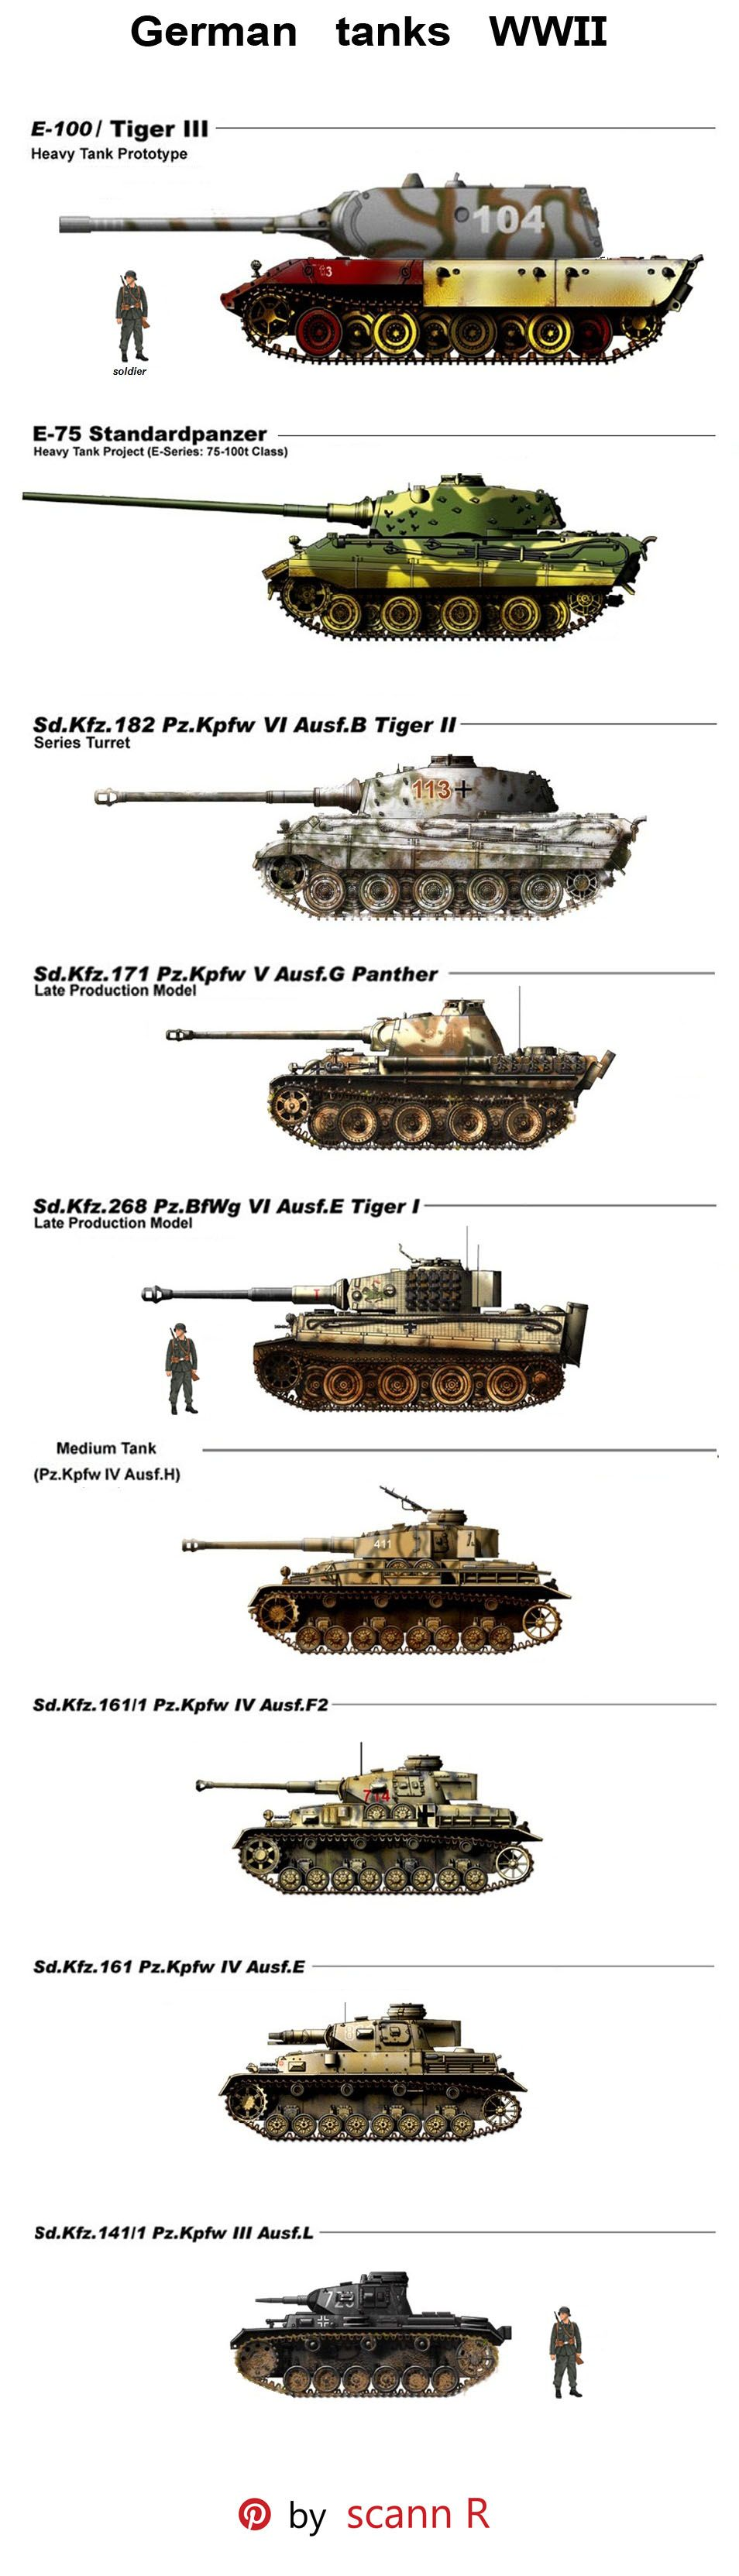 Day reenactment ww ii pictures pinterest - German Tanks Of World War Ii The Top 2 Heavy Tank Was Never Made Pin By Paolo Marzioli